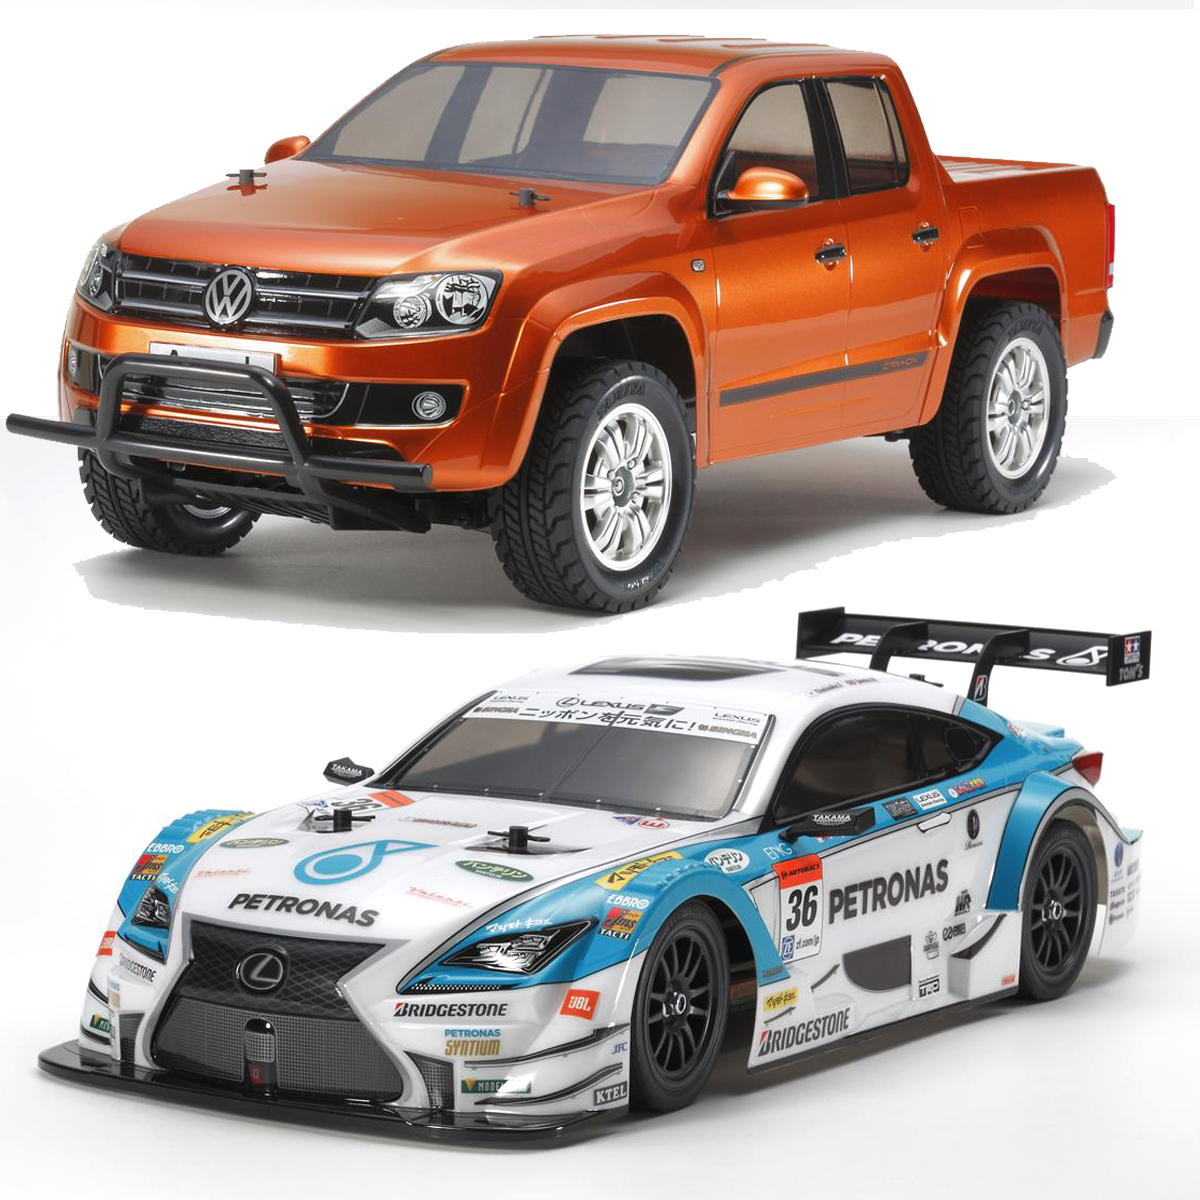 Tamiya Announces New VW Amarok, Petronas Tom's RC F, and Limited Edition DB01RRR Kits